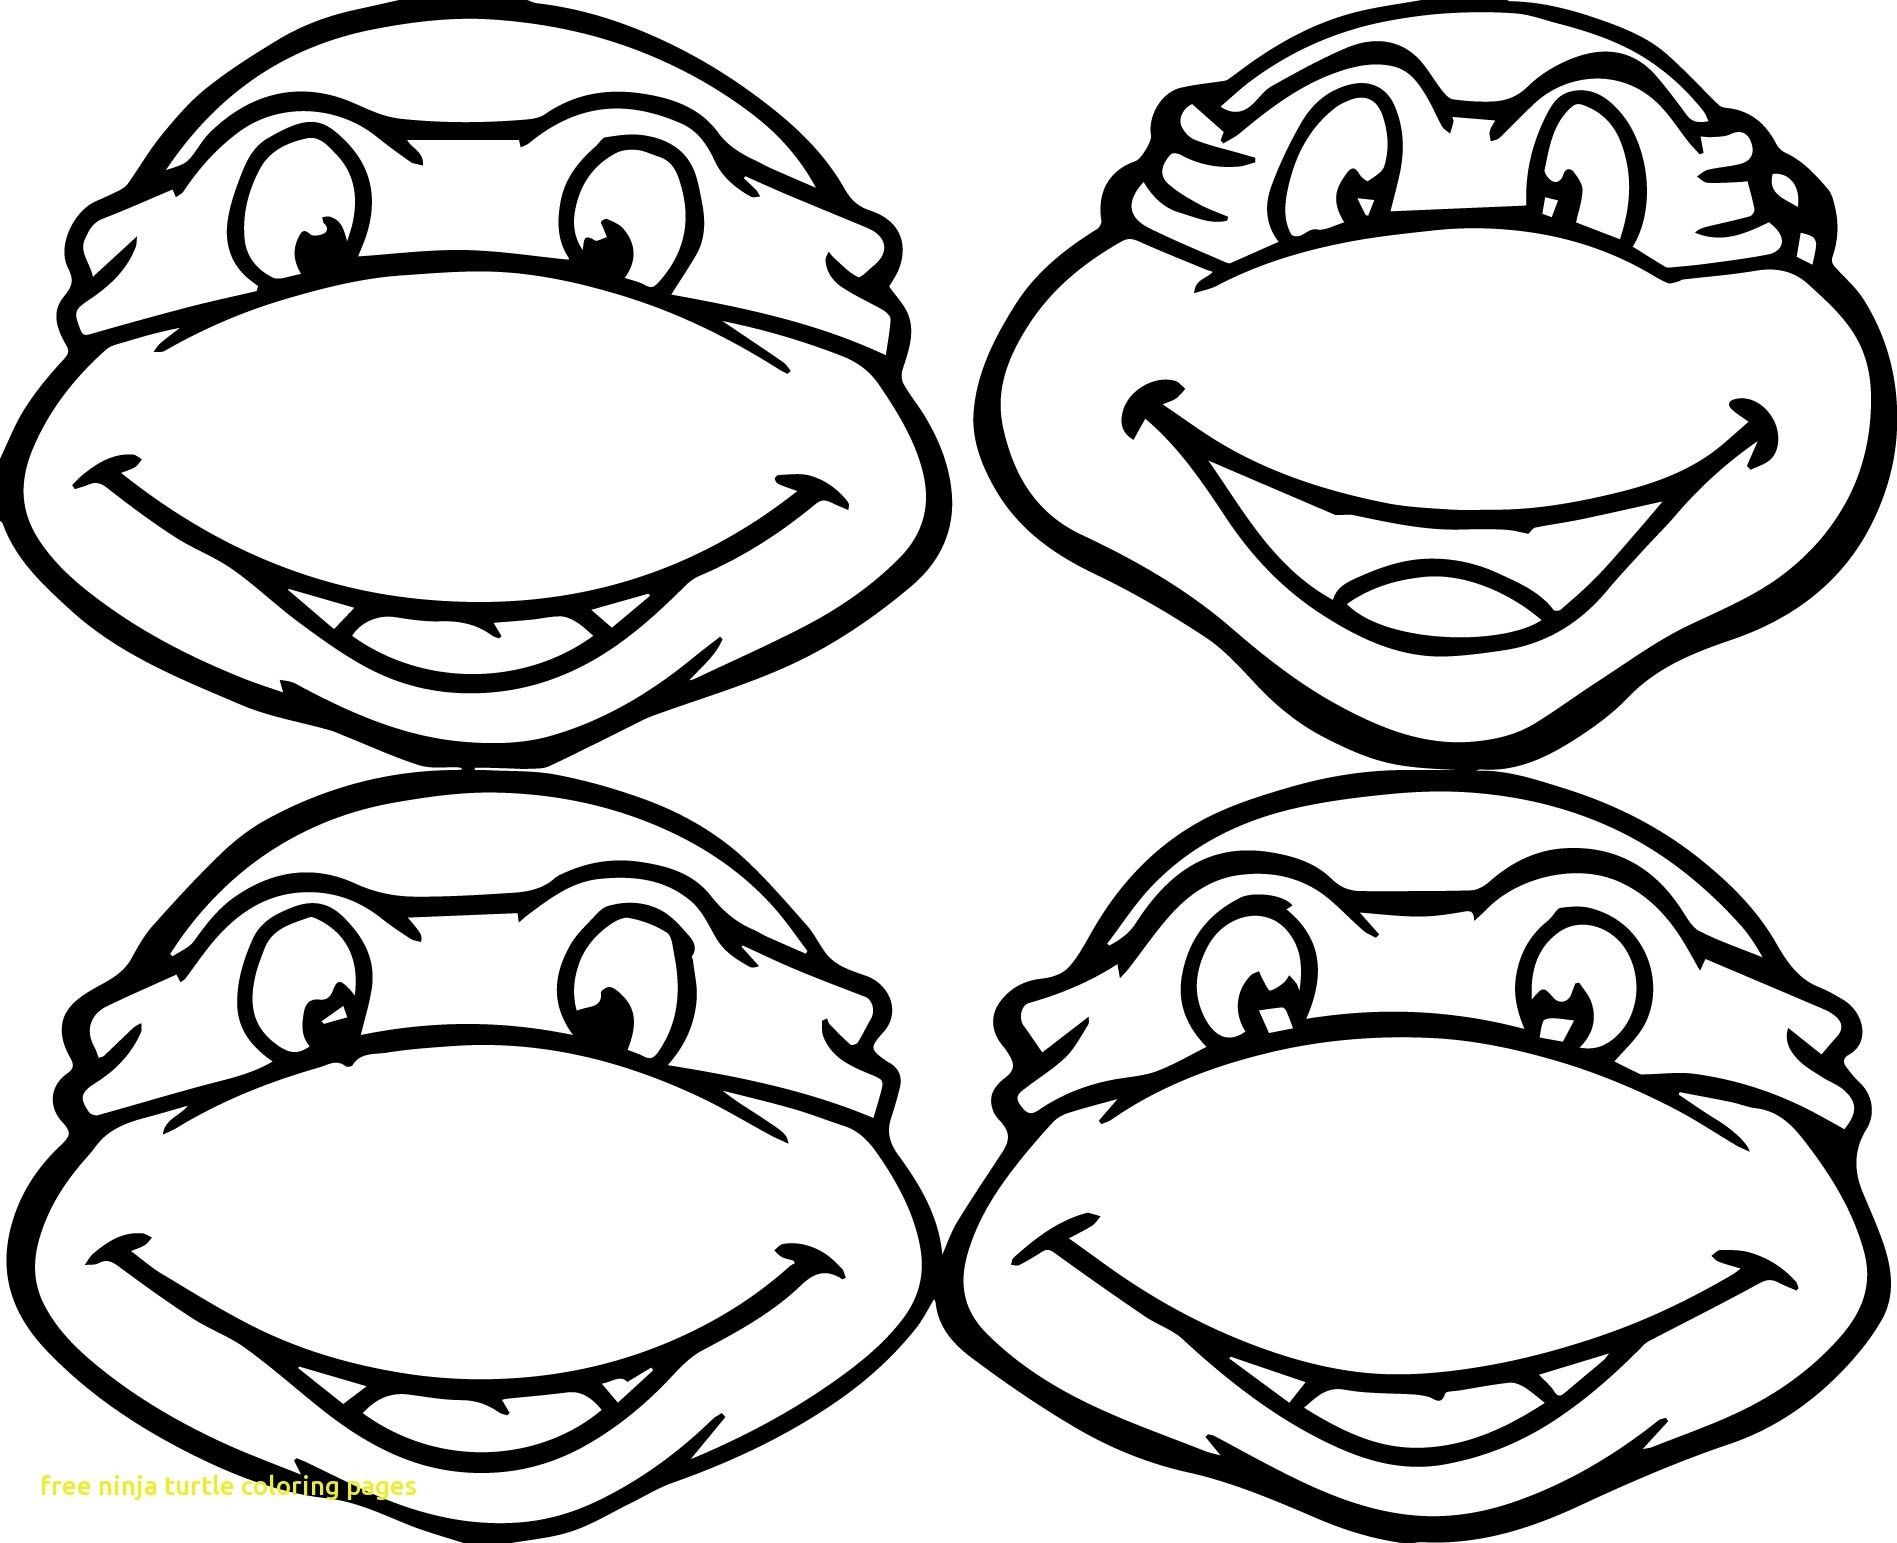 Ninja turtles face coloring pages